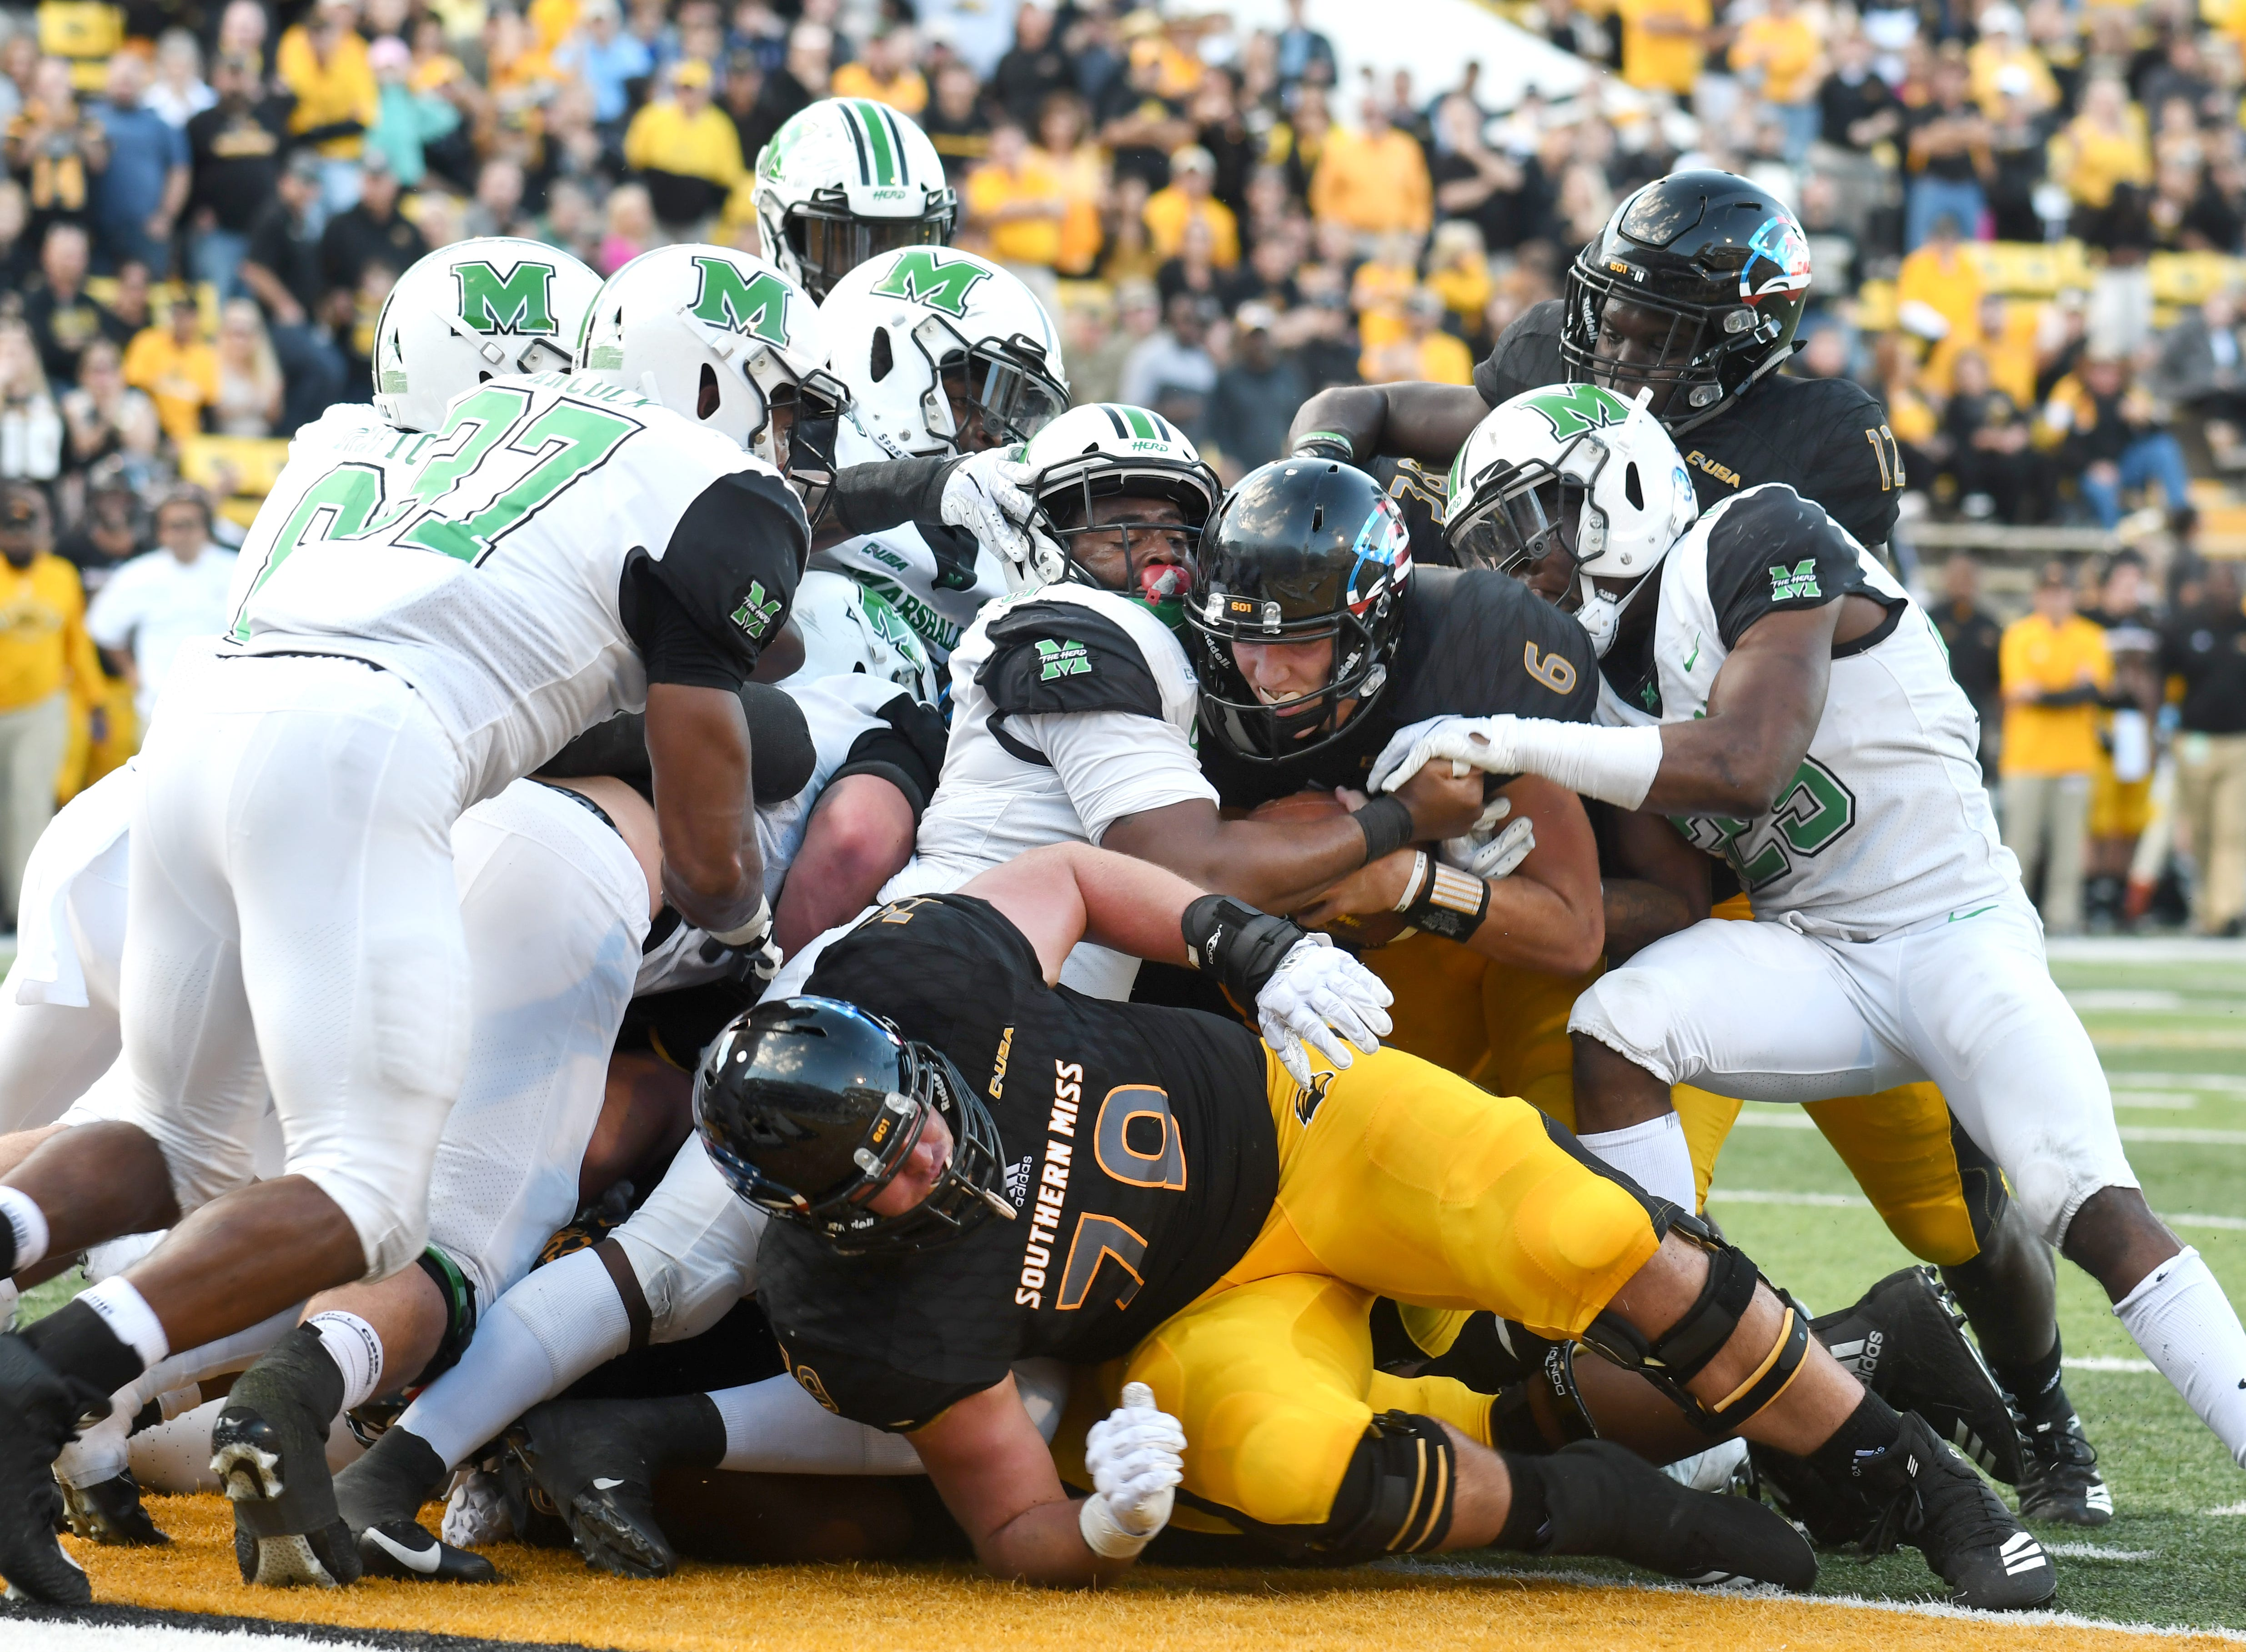 Southern Miss quarterback Tate Whatley runs the ball for a touchdown in a game against Marshall at M.M. Roberts Stadium on Saturday, November 3, 2018.